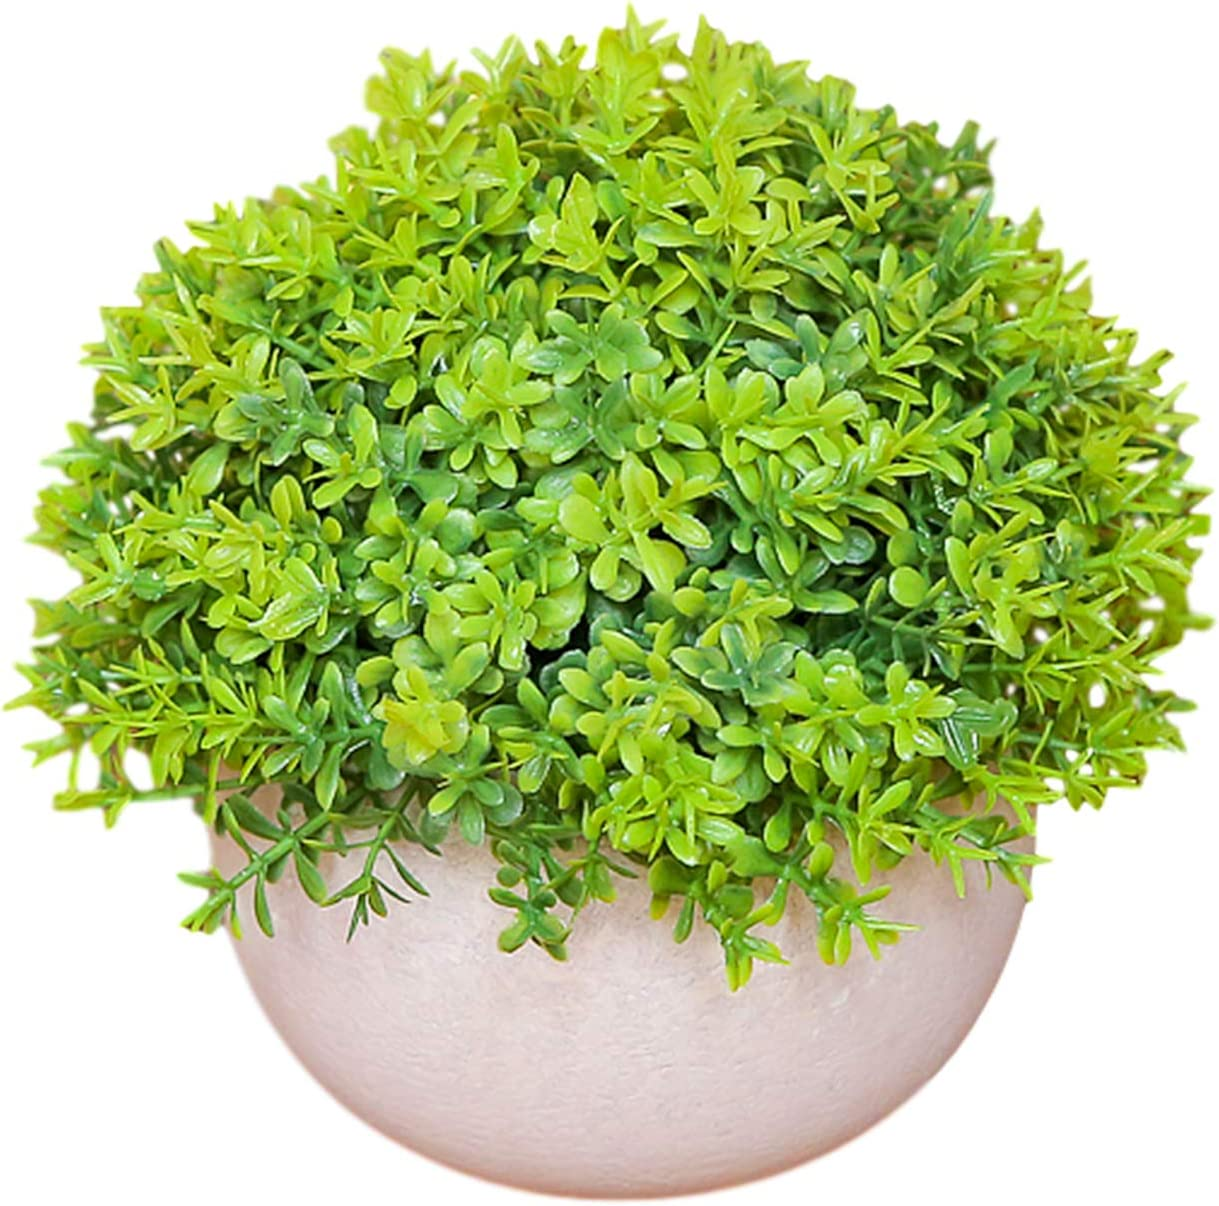 Artificial Plant in Pots for Home Decor Indoor Aesthetic, Fall Décor Faux Fake Topiary Shrubs for Desk and Shelf in Bathroom / Bedroom / Living Room (Green-Grass)